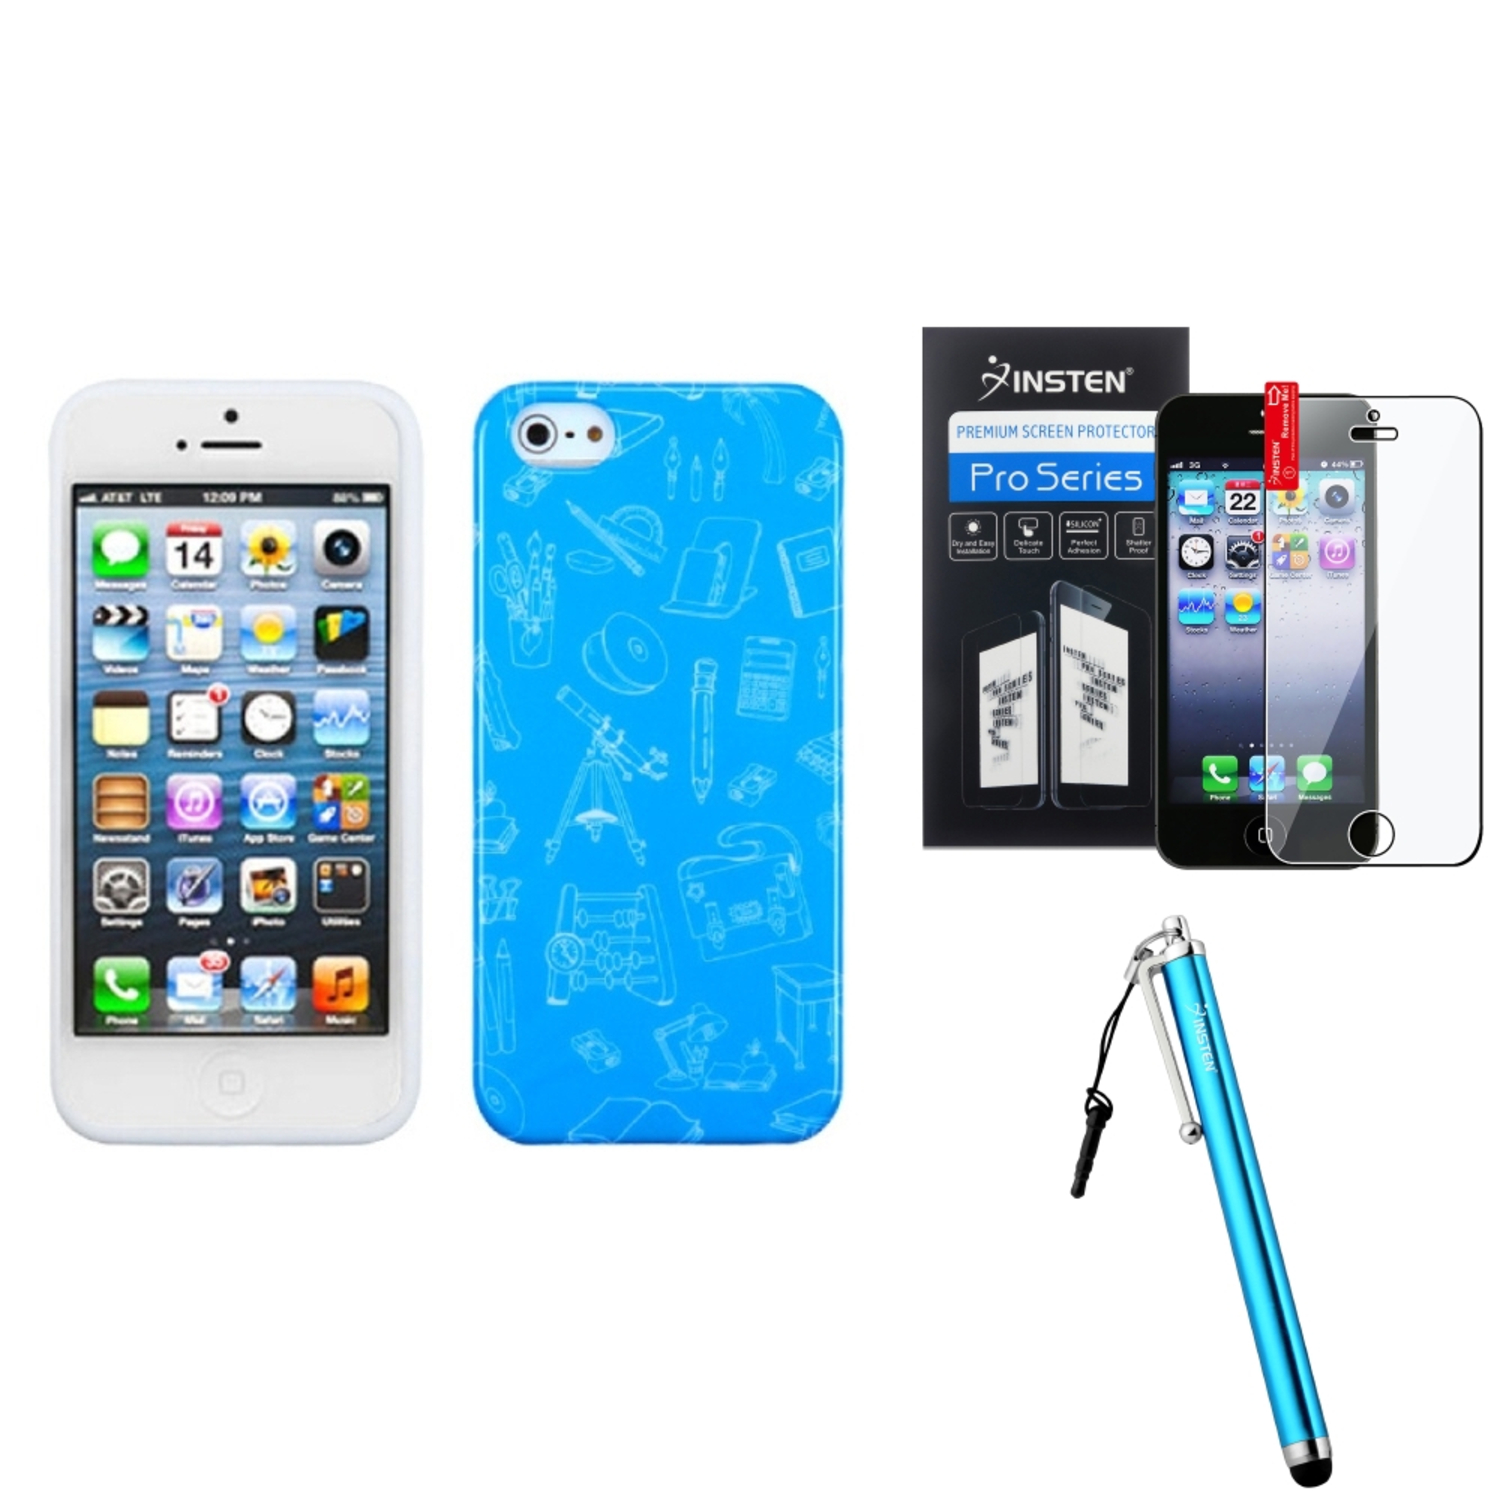 Insten School life/Blue Candy Skin Case For iPhone SE 5S 5 + Stylus + Protector